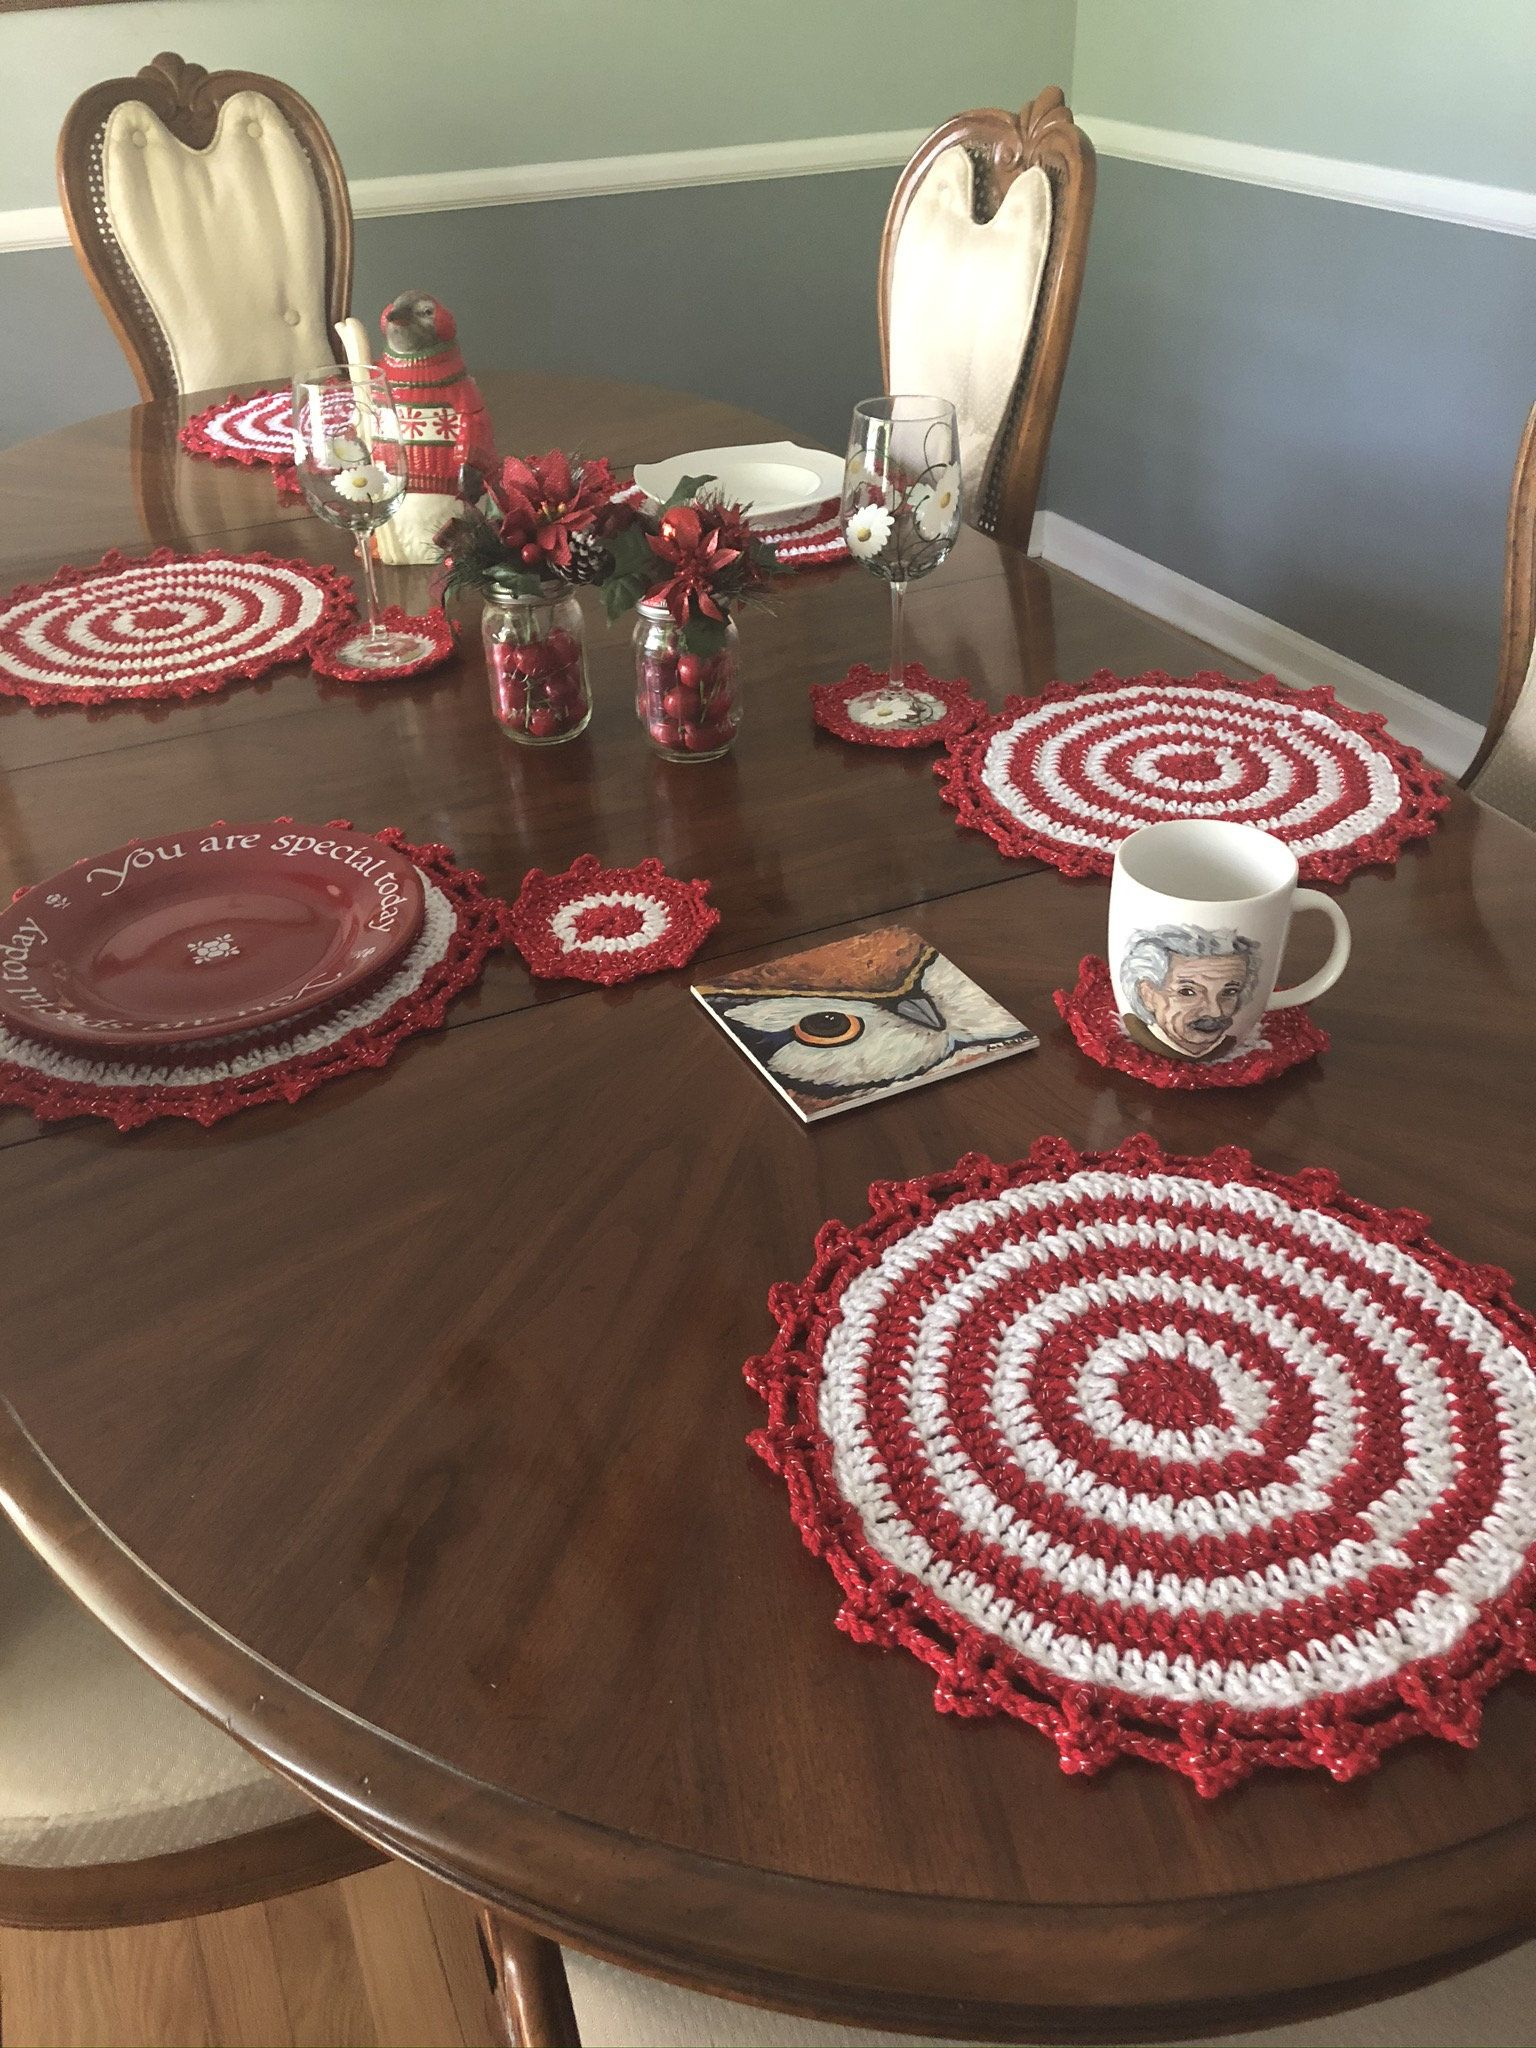 Red And White Sparkly Crochet Placemats And Coaster Set Etsy In 2020 Holiday Table Decorations Crochet Placemats Placemats